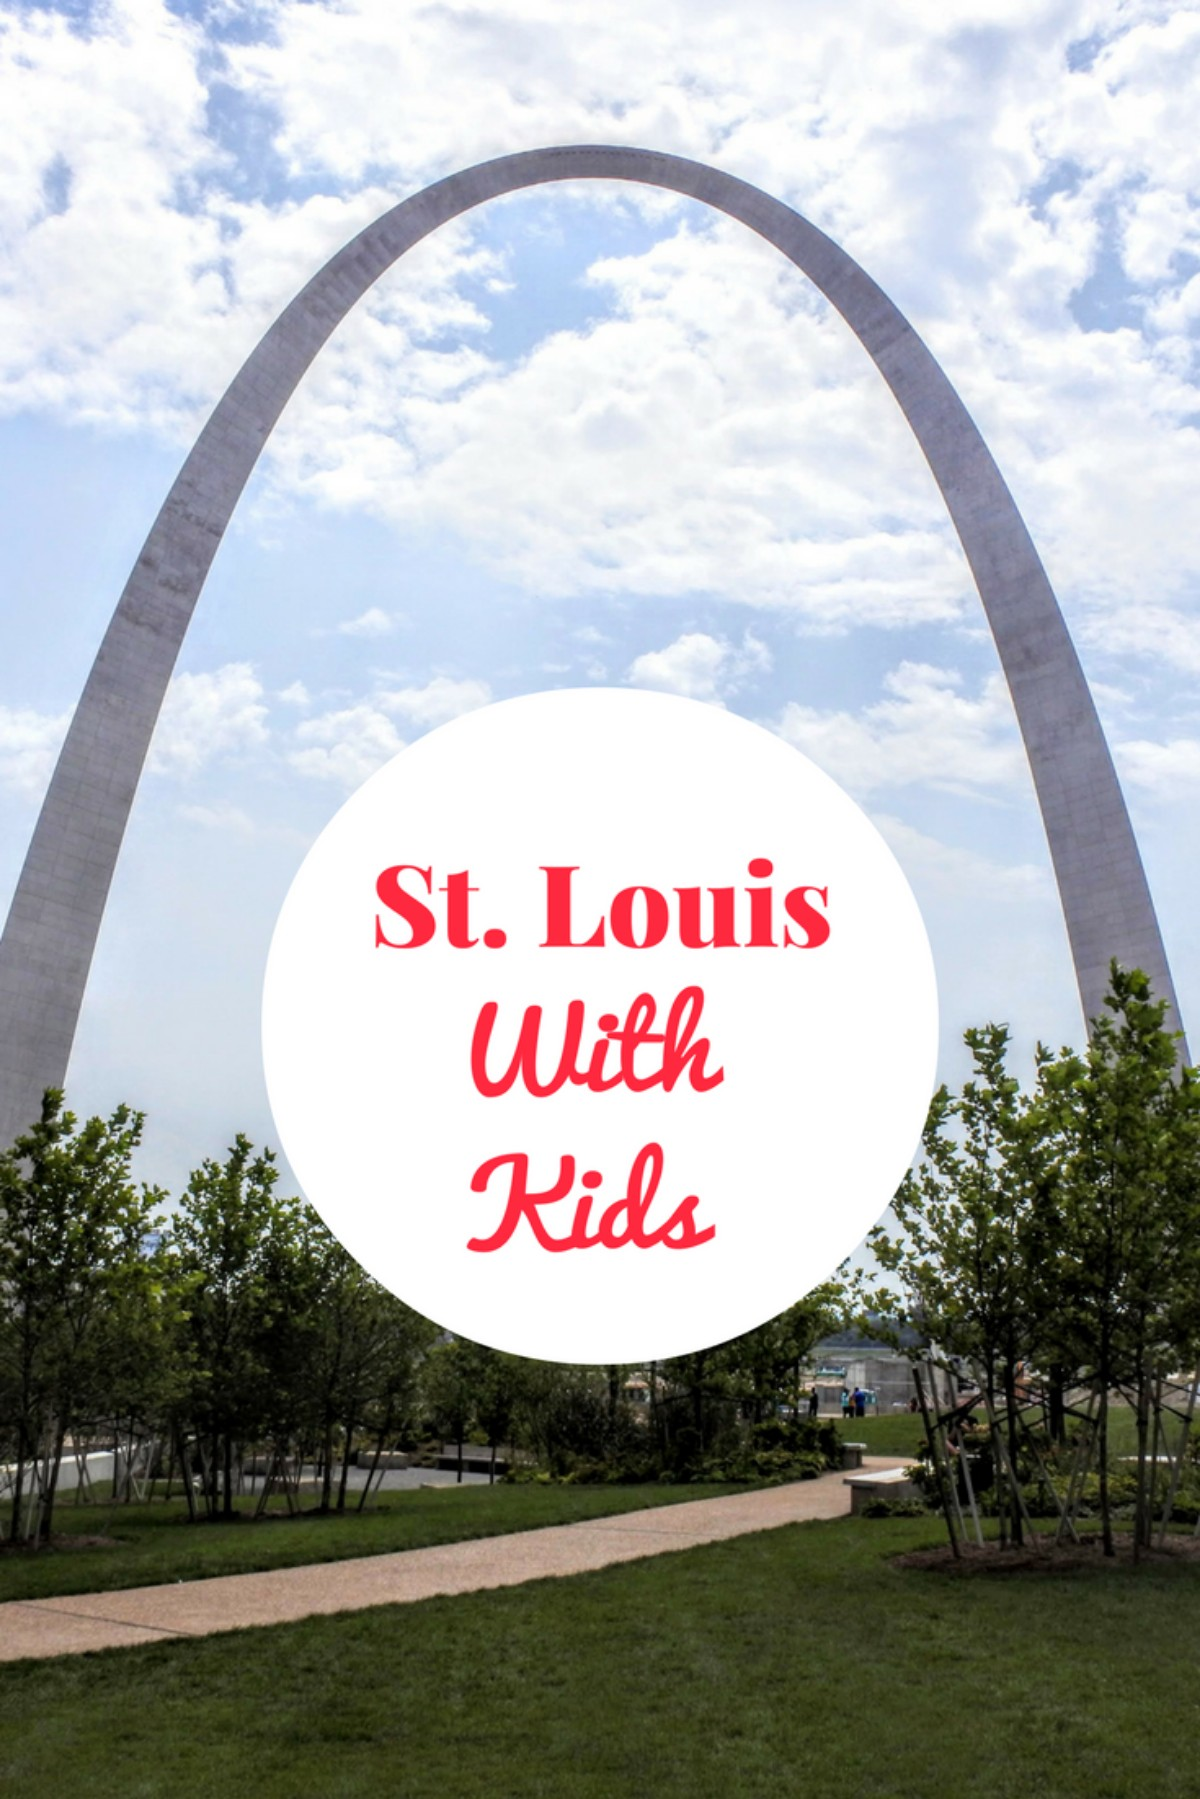 St. Louis is a great city to visit with kids! From the non-traditional City Museum to our favorite children's museum St. Louis has much to offer families.